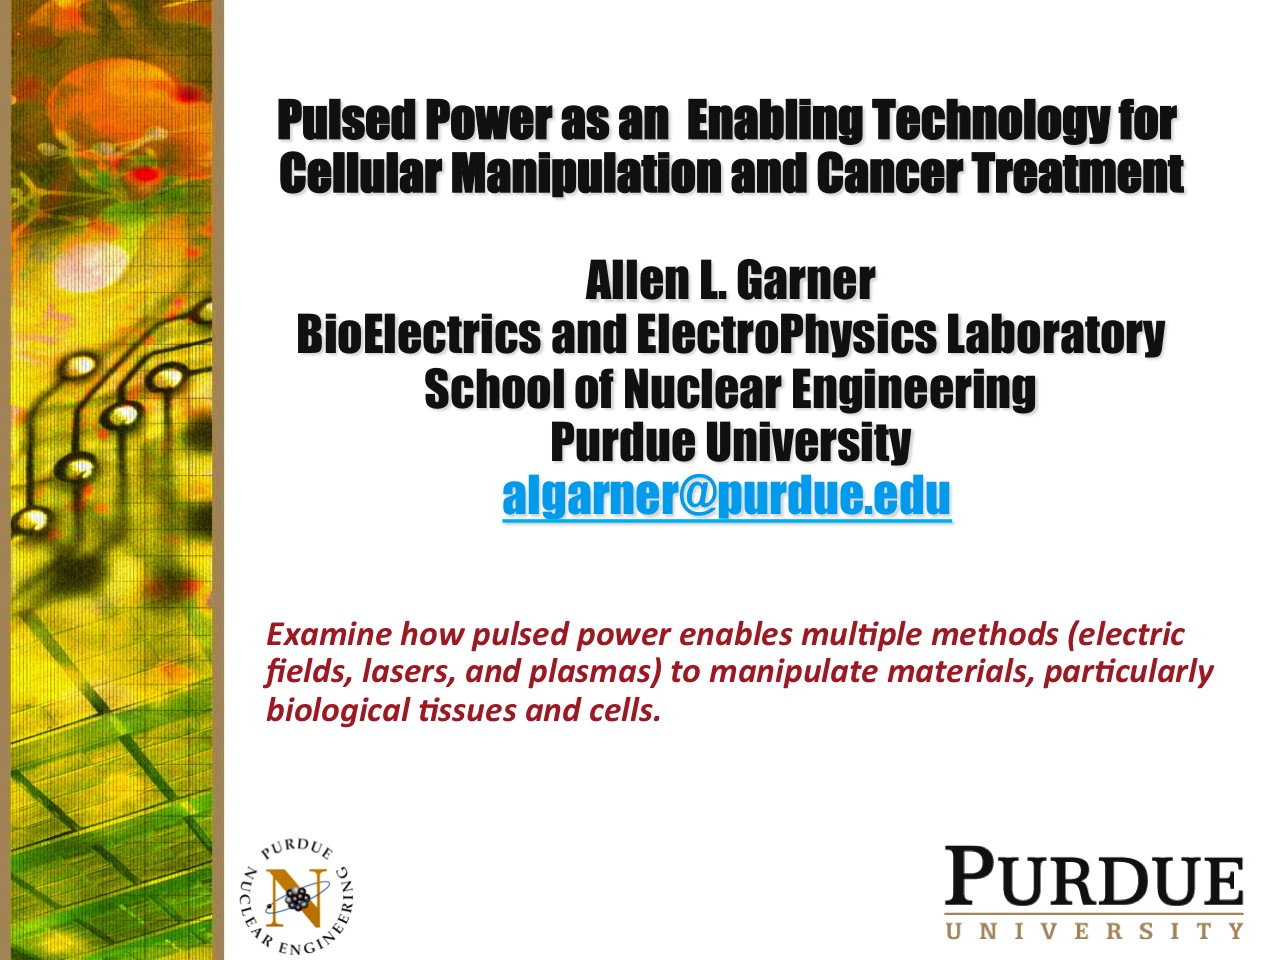 Pulsed Power as an Enabling Technology for Cellular Manipulation and Cancer Treatment Allen L. Garner BioElectrics and ElectroPhysics Laboratory School of Nuclear Engineering Purdue University algarner@purdue.edu